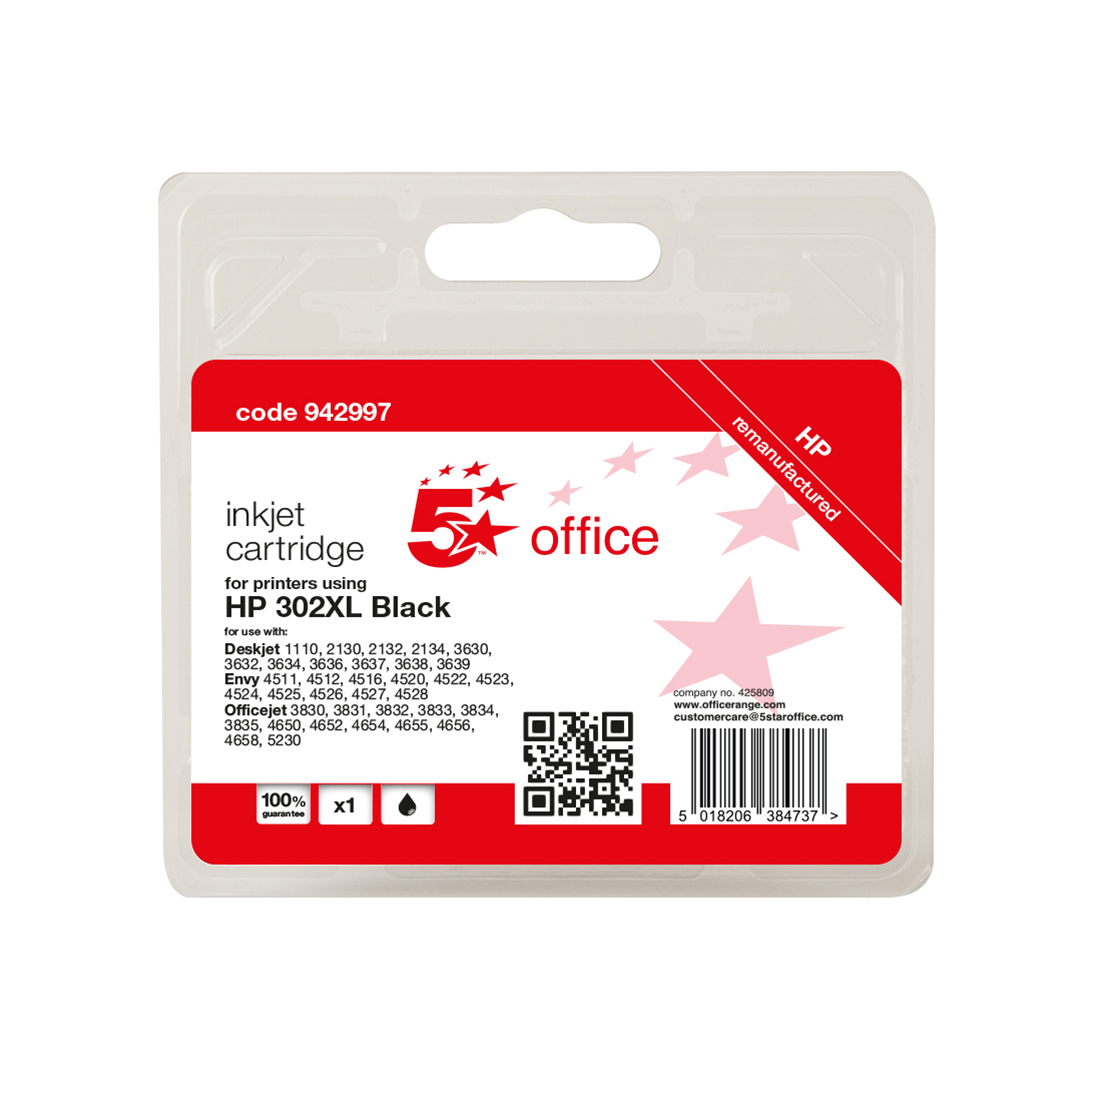 Inkjet Cartridges 5 Star Office Remanufactured Inkjet Cartridge Page Life Black 480pp HP No.302XL F6U68AE Alternative